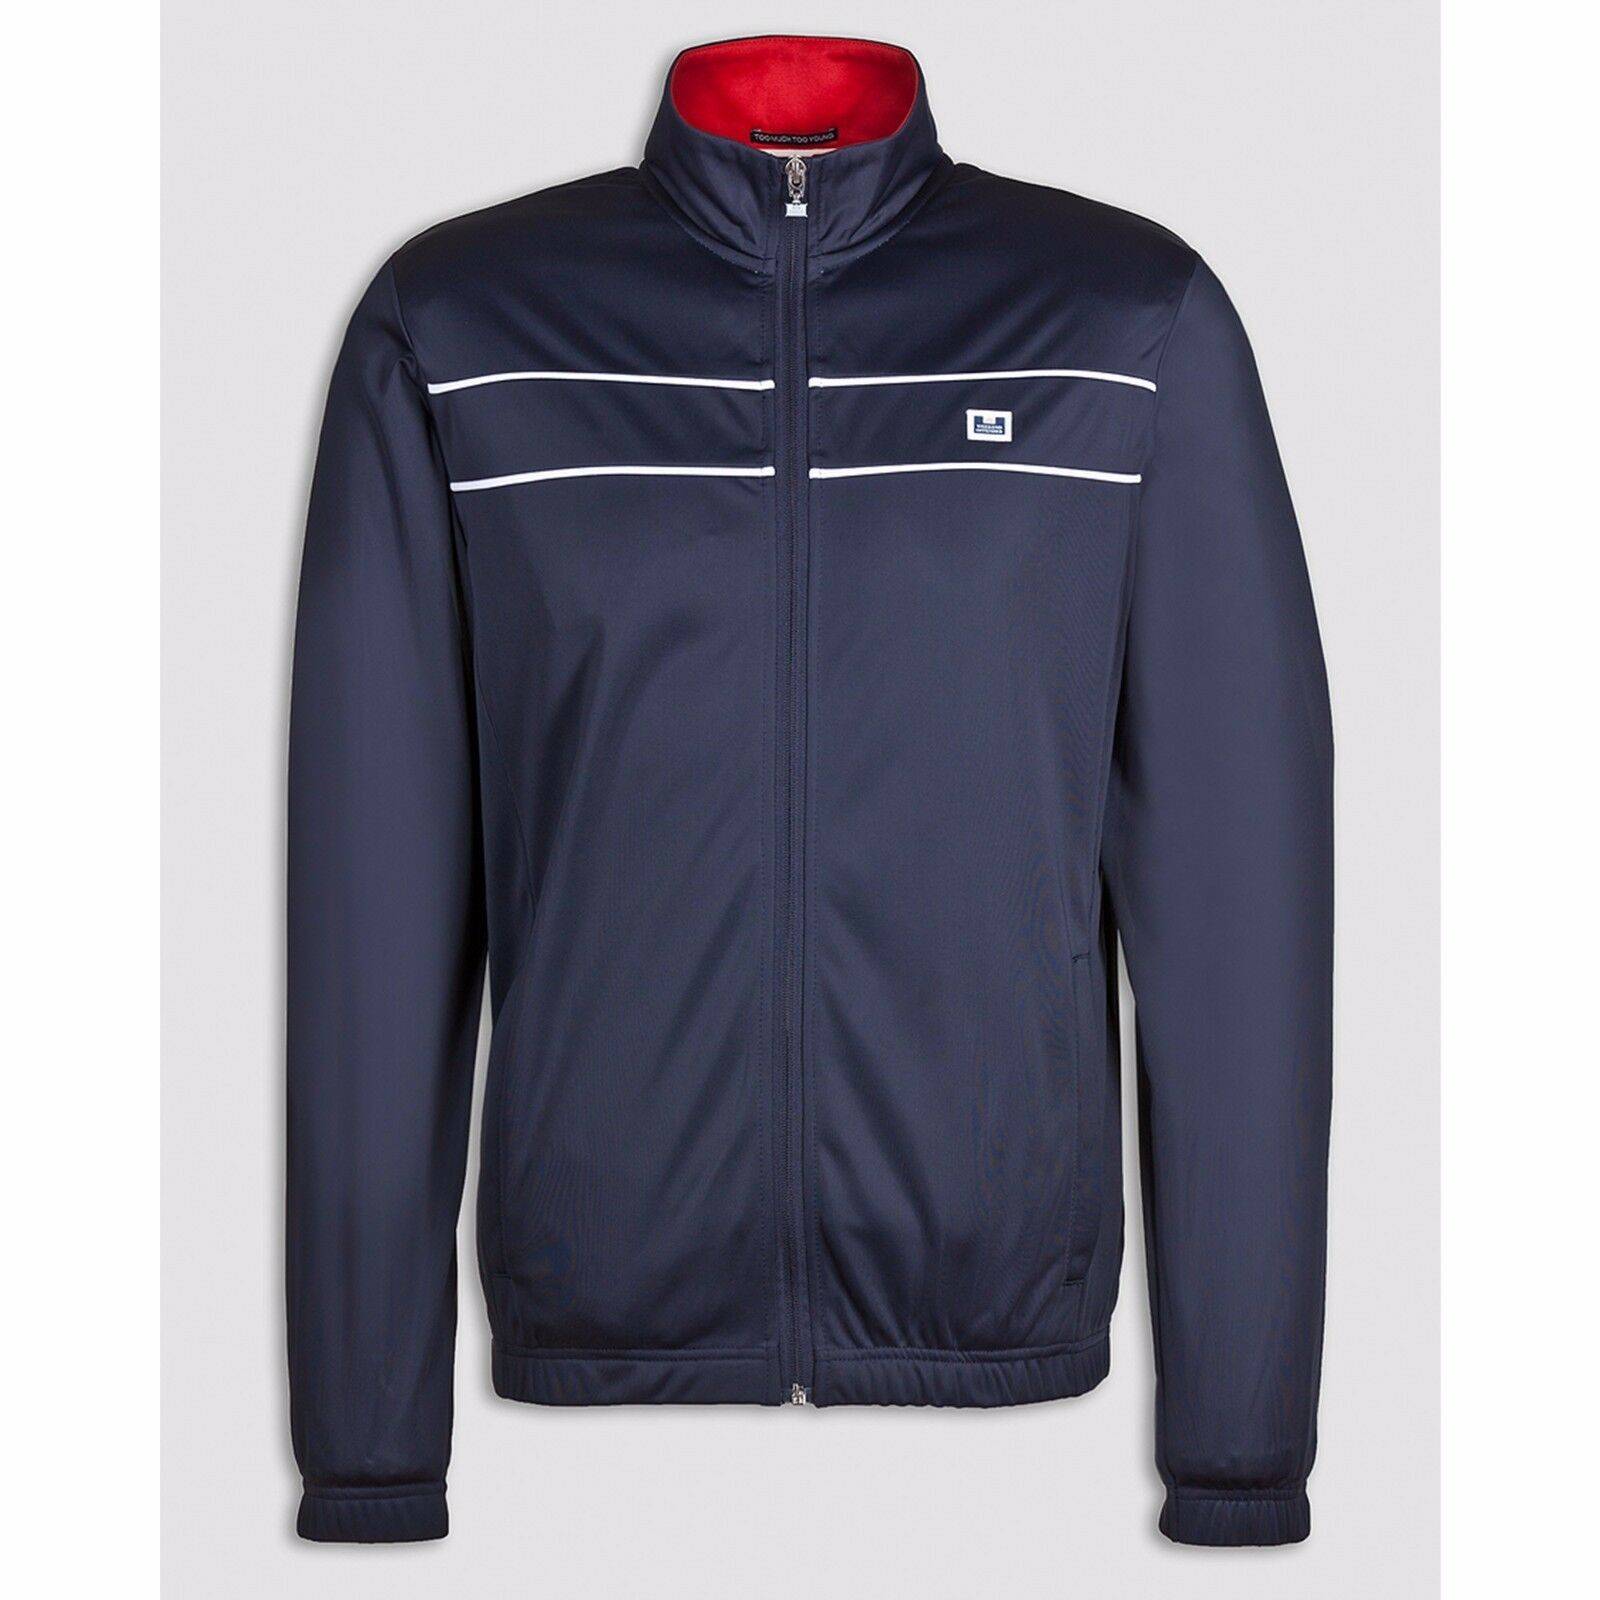 - 30% WEEKEND OFFENDER FELPA BAIN TOP XXL GIACCA ACETATO FULL ZIP RETRO